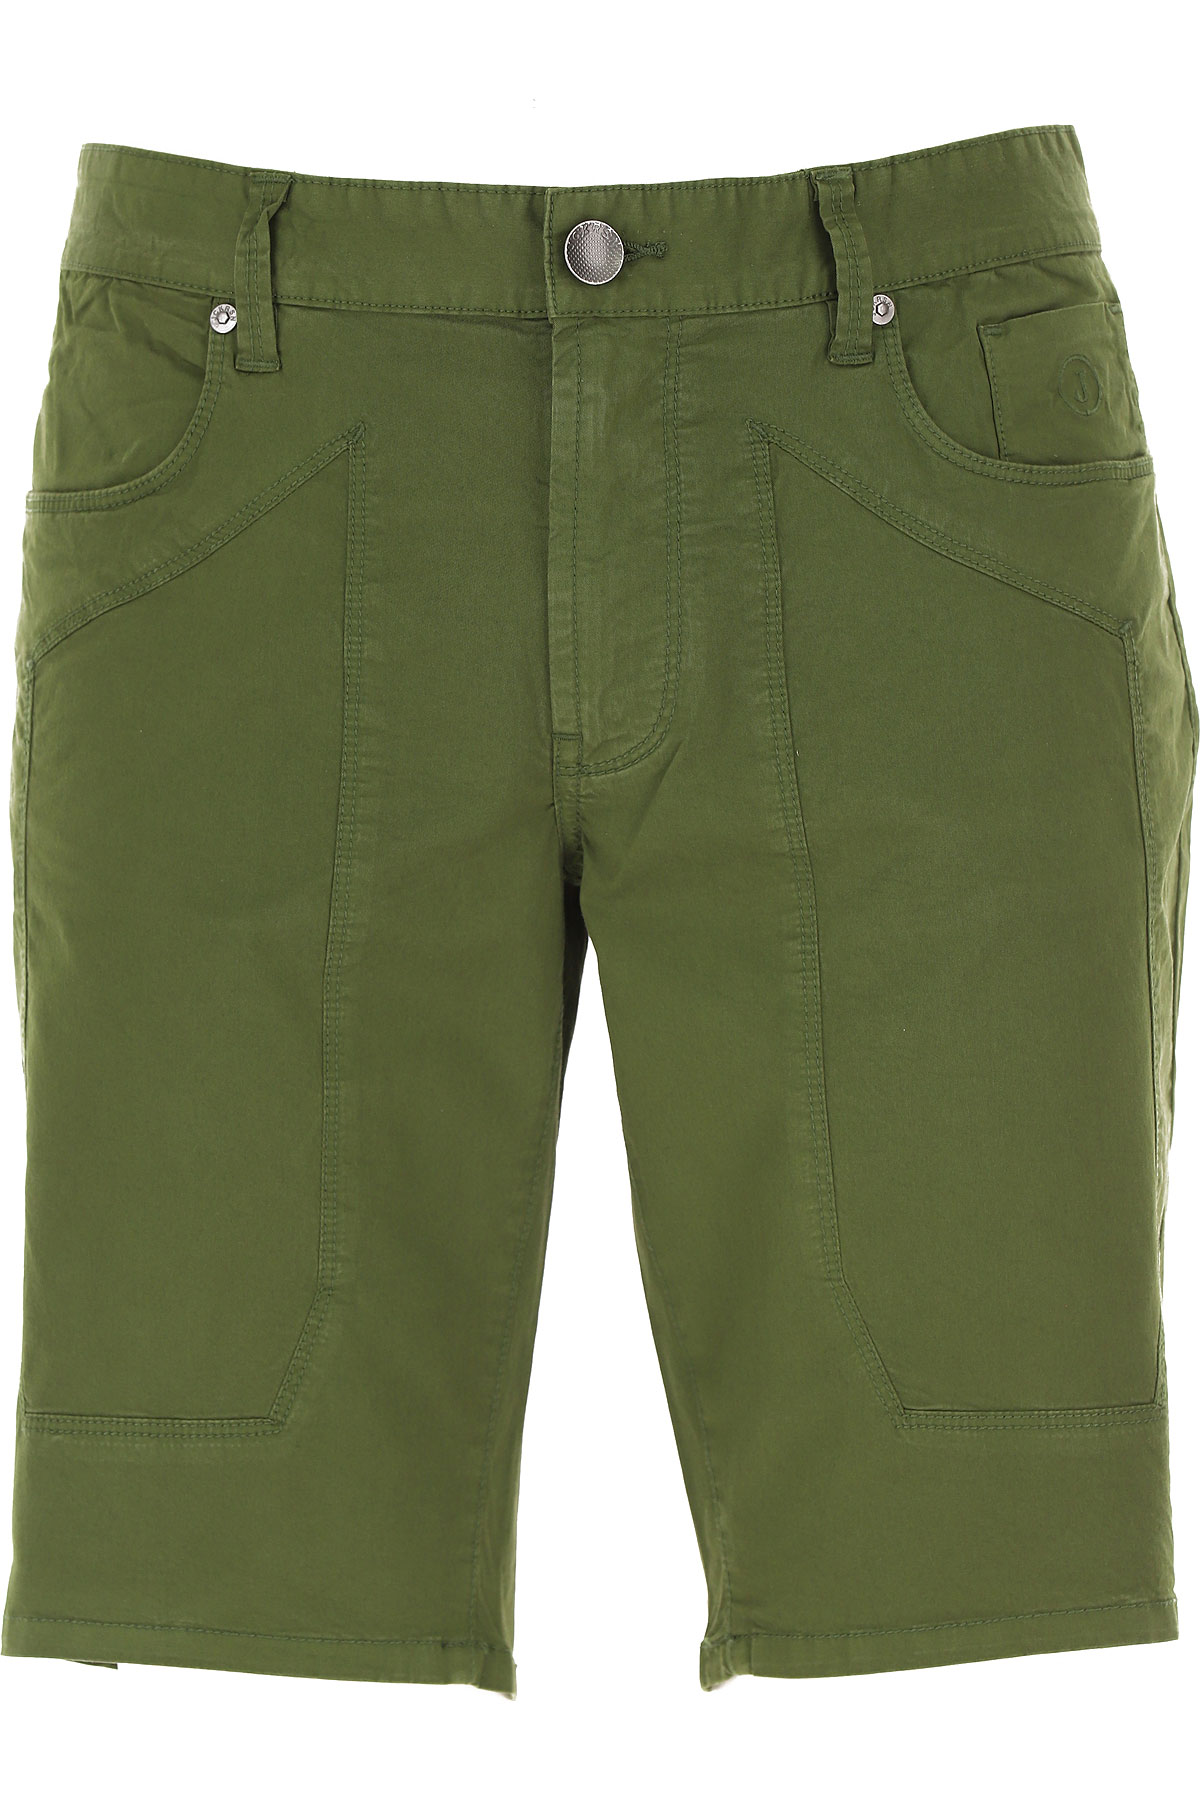 Jeckerson Shorts for Men On Sale, Green, Cotton, 2019, 30 31 32 33 34 35 36